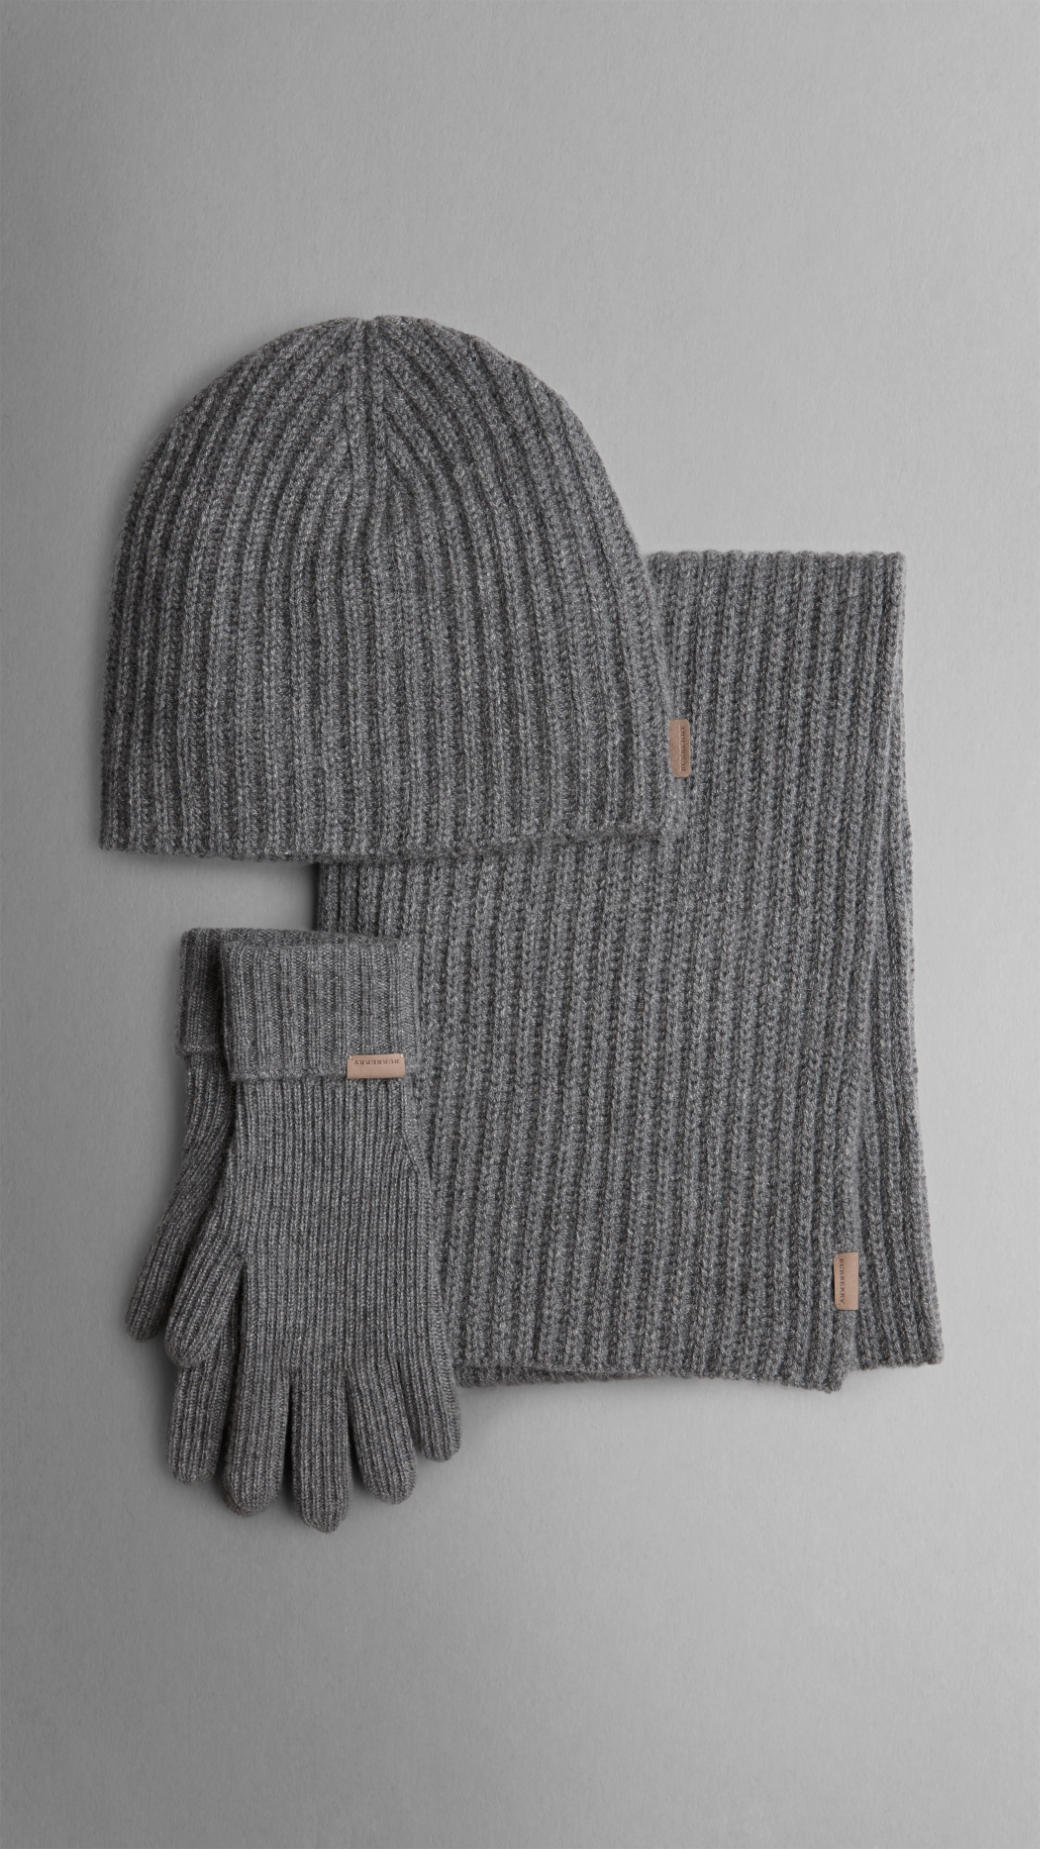 34d651bb263 ... new zealand lyst burberry cashmere ribbed knit hat gloves and scarf set  in 058e7 4ab11